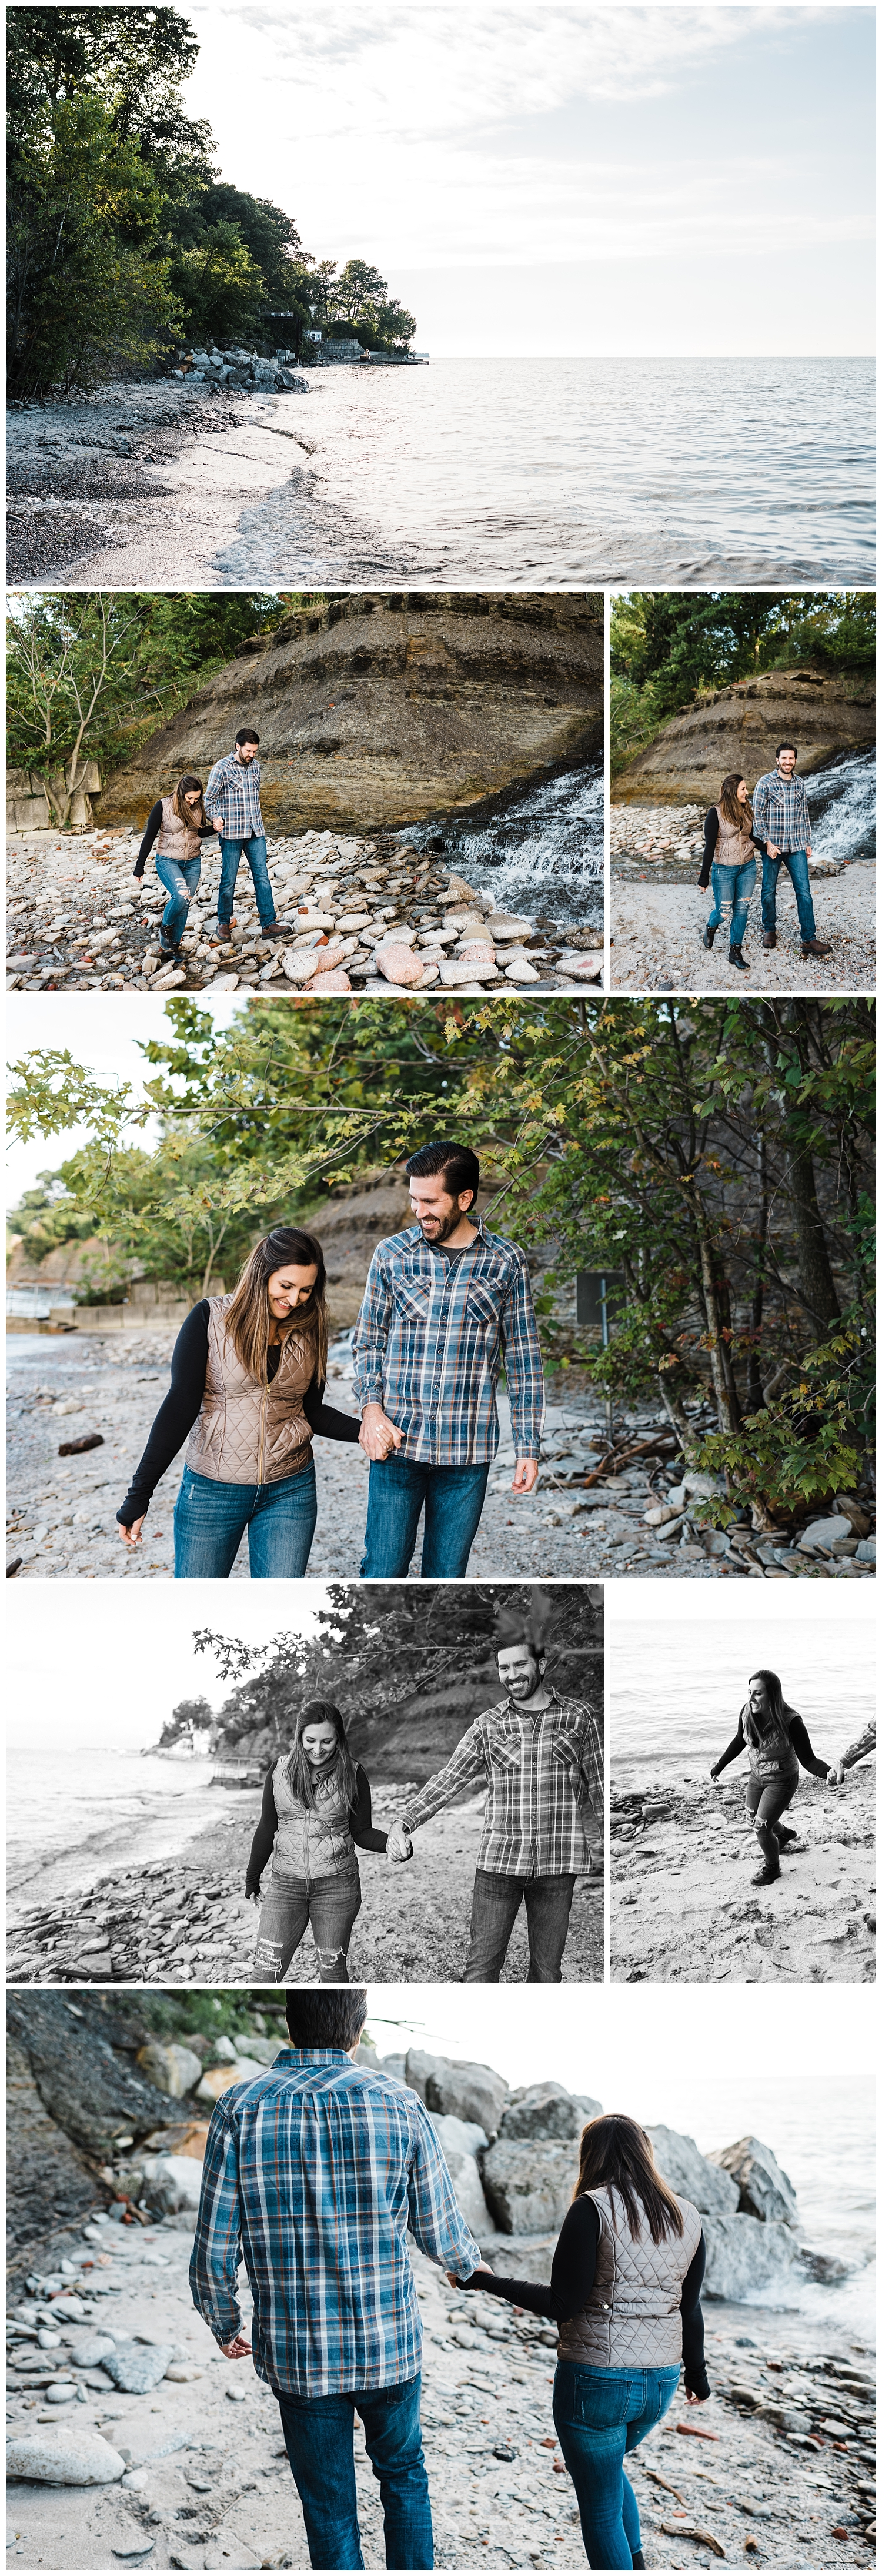 Easterday Creative | Adventurous wedding photographer and storyteller | Melissa + David | Lake Erie Beach Engagement | Cleveland, OH